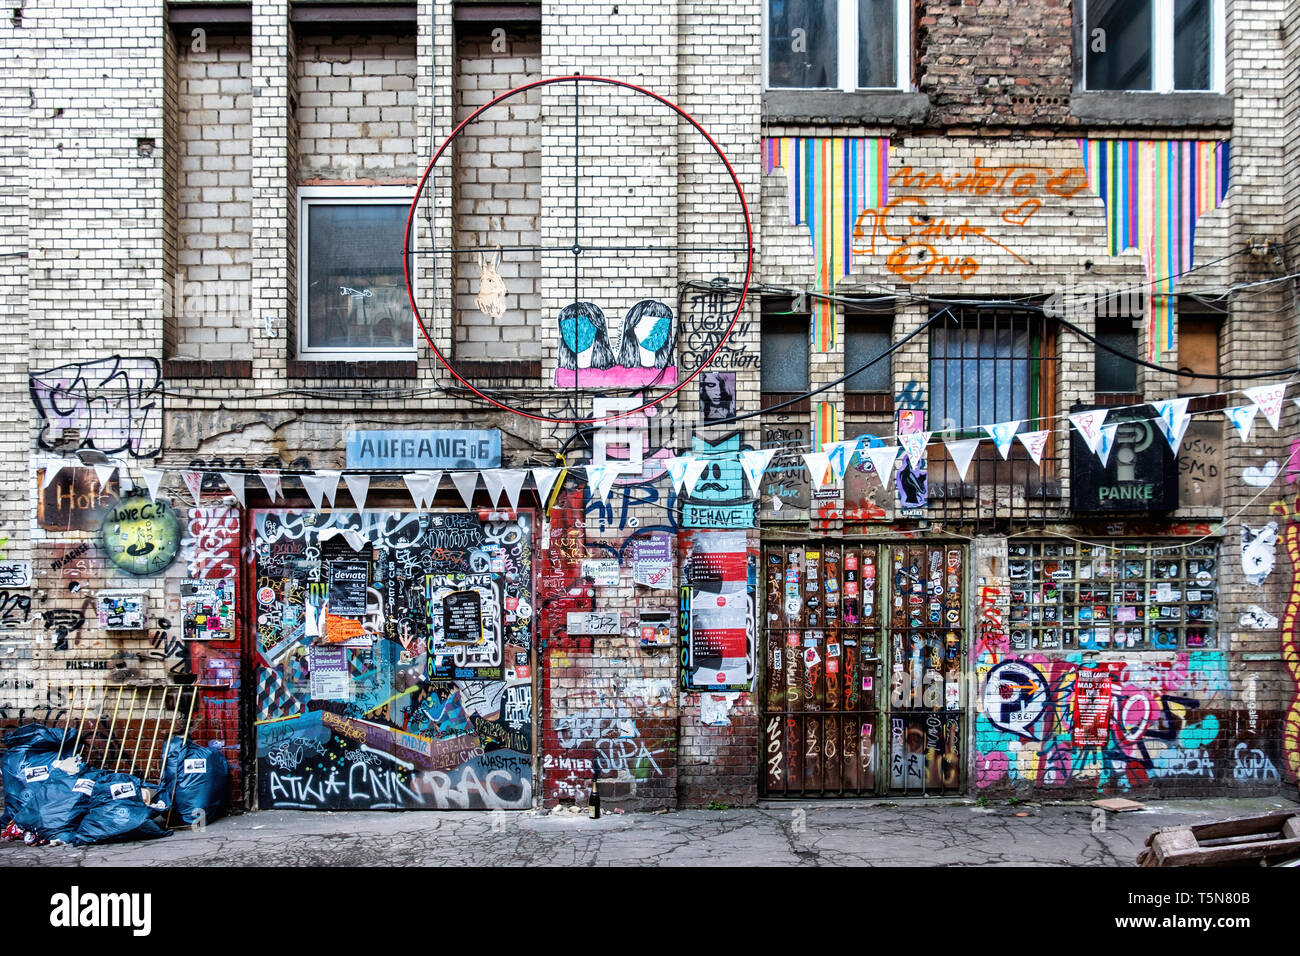 Wedding, Berlin. Inner courtyard of dilapidated old industrial building next to Panke river at Gerichtstrasse 23. Residential & business use. Stock Photo